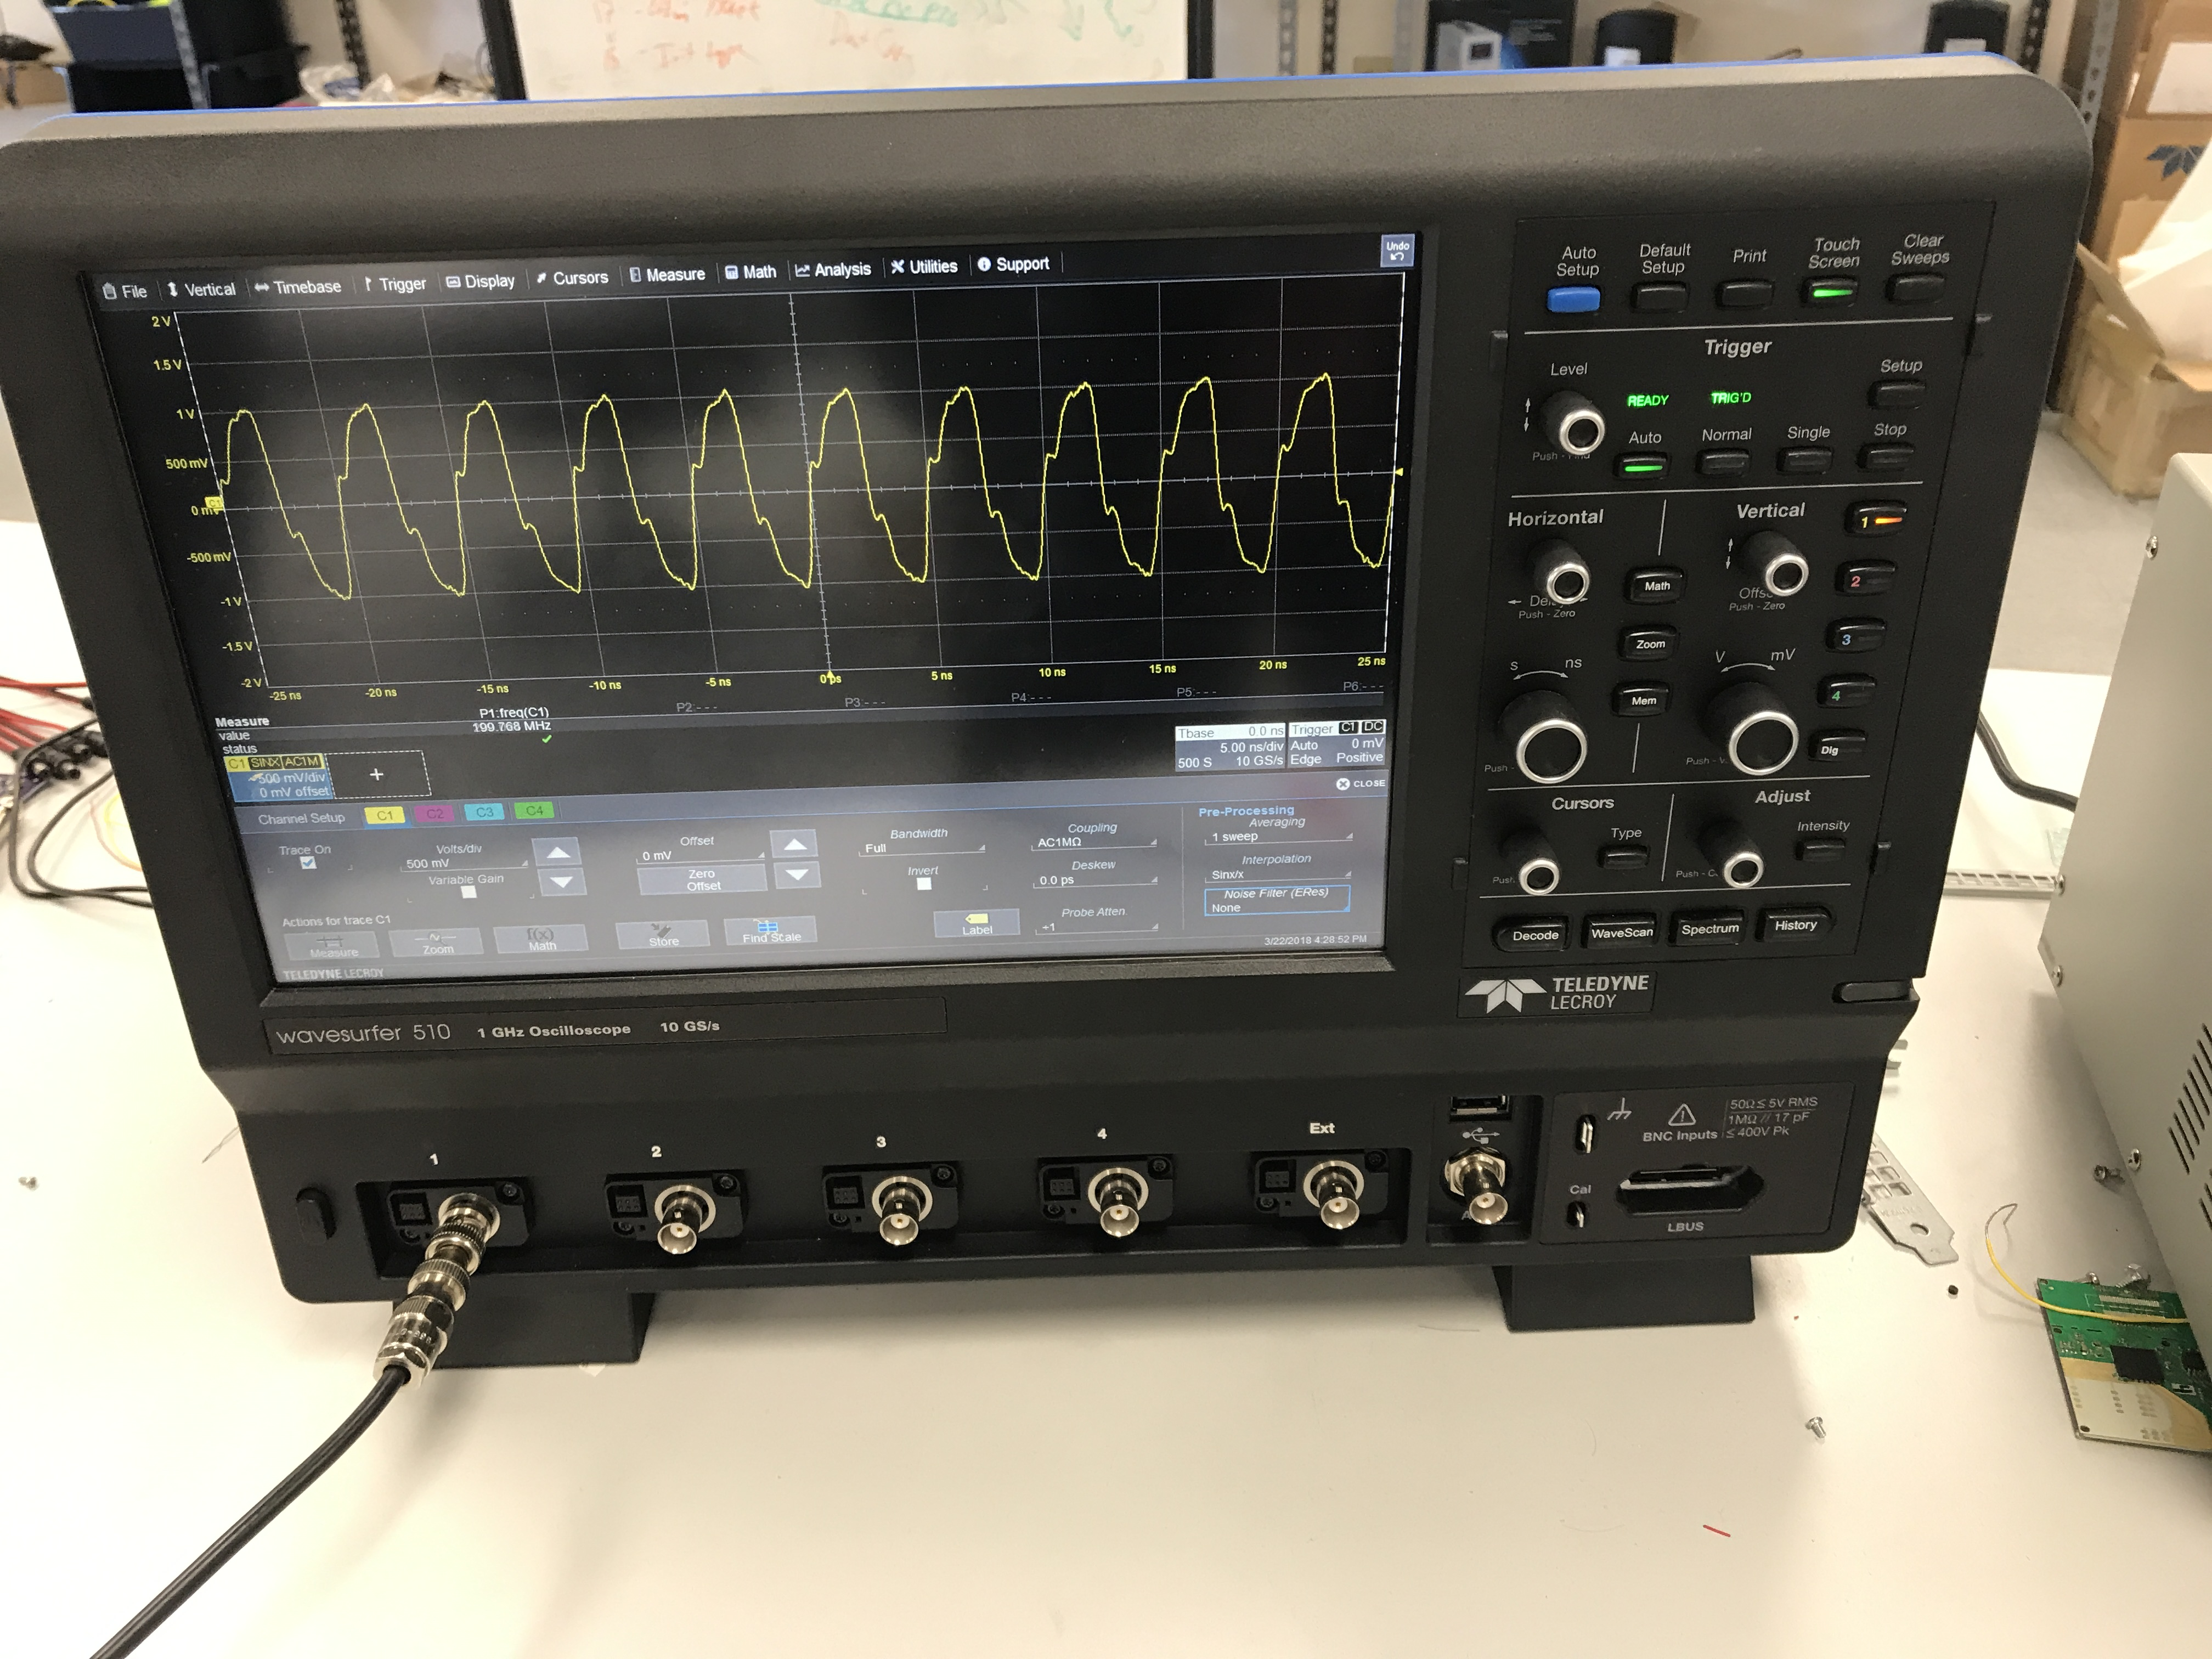 Resolved] LMX2595EVM: LMX2595EVM Low Frequency Output Waveforms